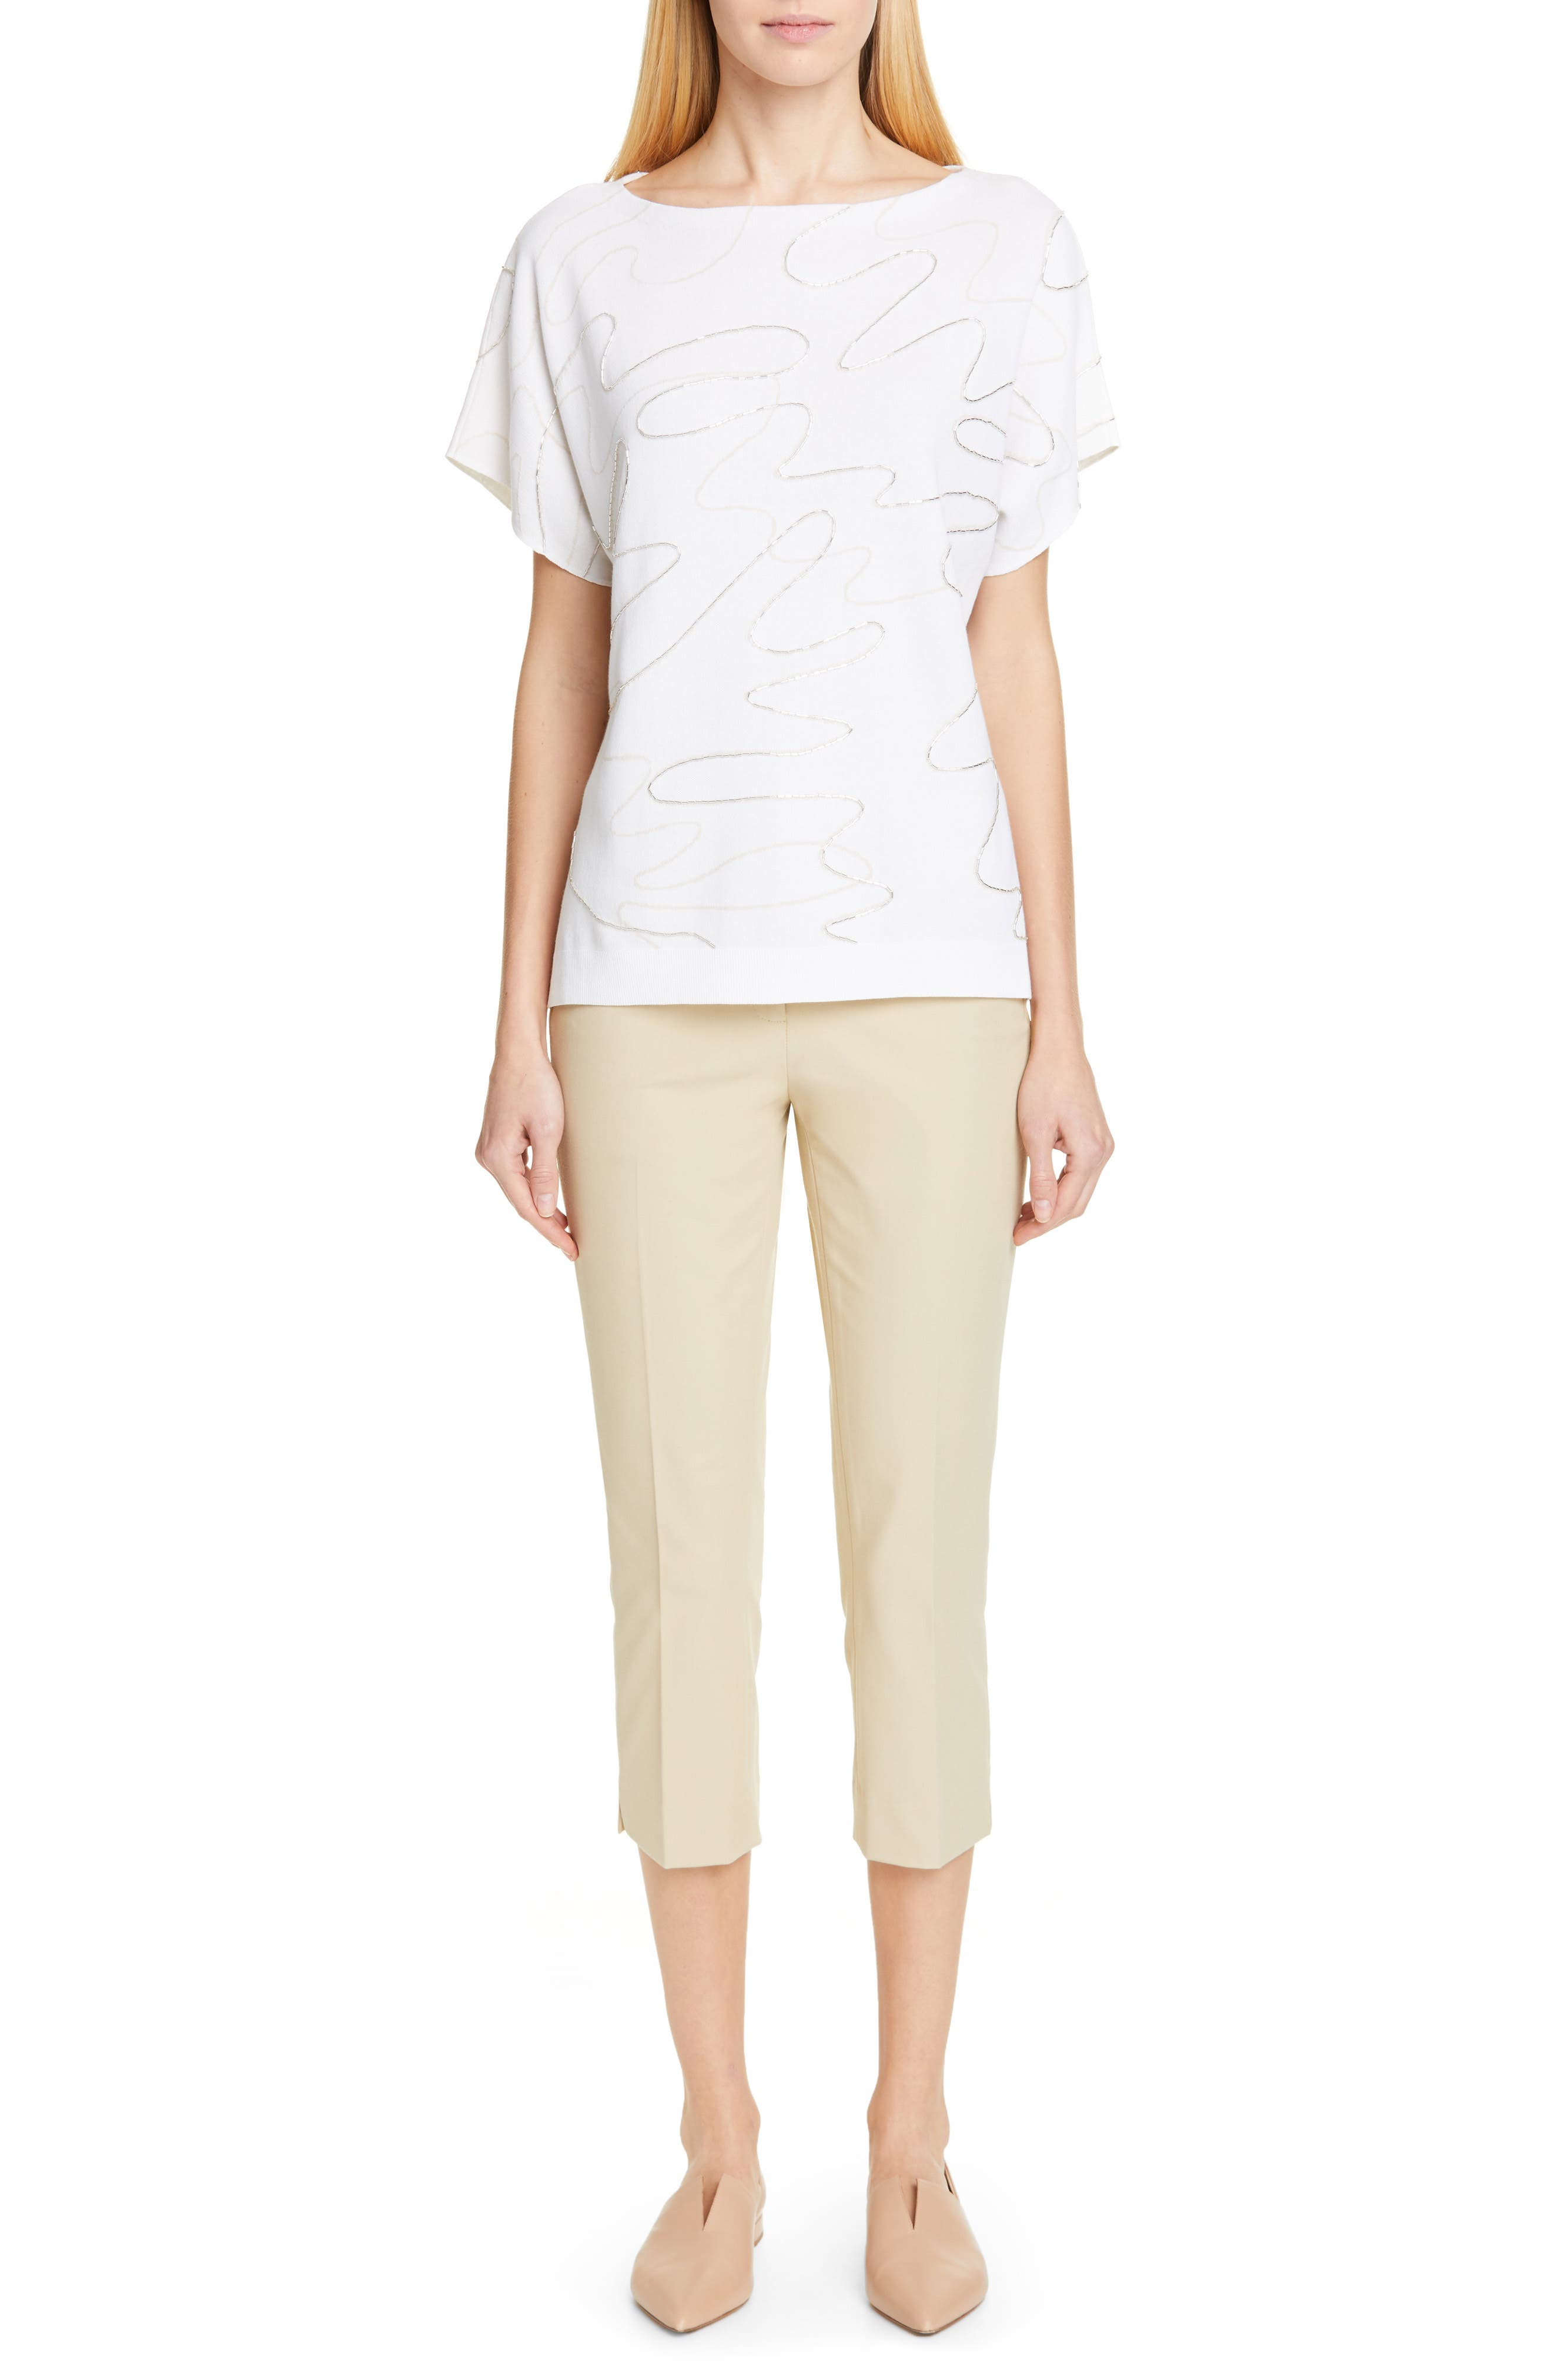 LAFAYETTE 148 NEW YORK, Beaded Double Jacquard Sweater, Alternate thumbnail 7, color, WHITE/ RAFFIA